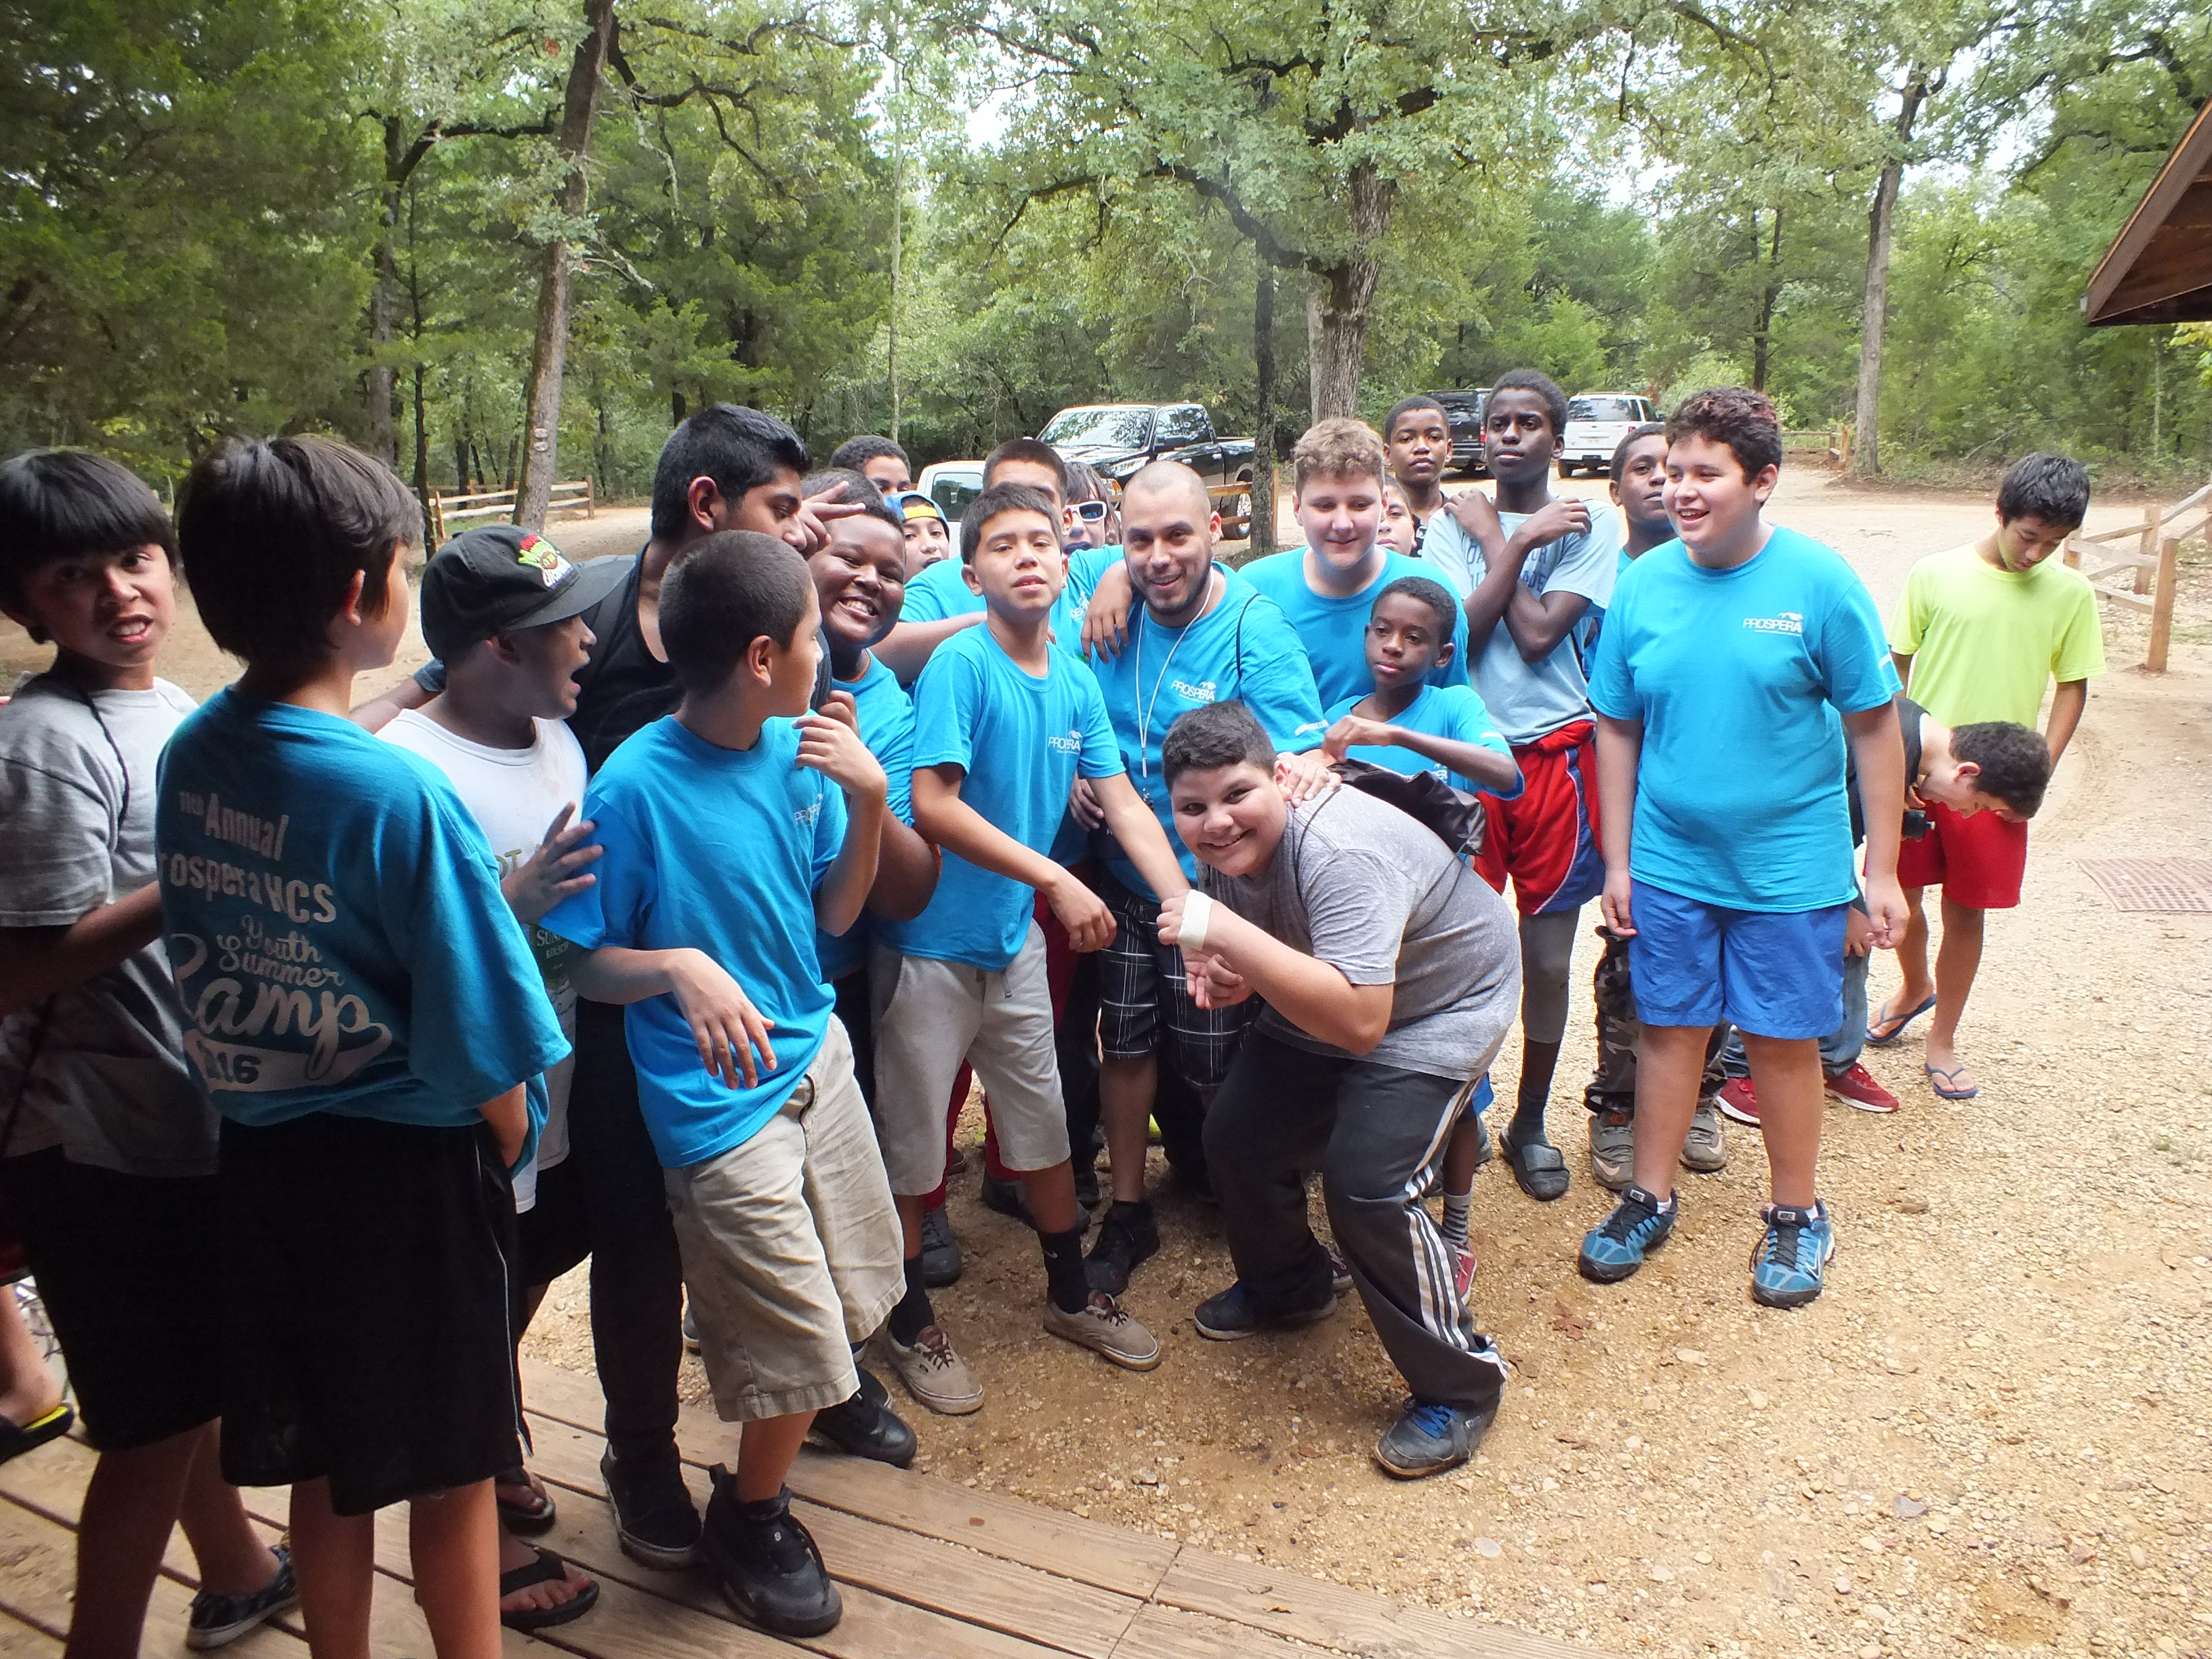 Over 100 Top Preforming Youths attended Summer Camp as Ultimate Reward